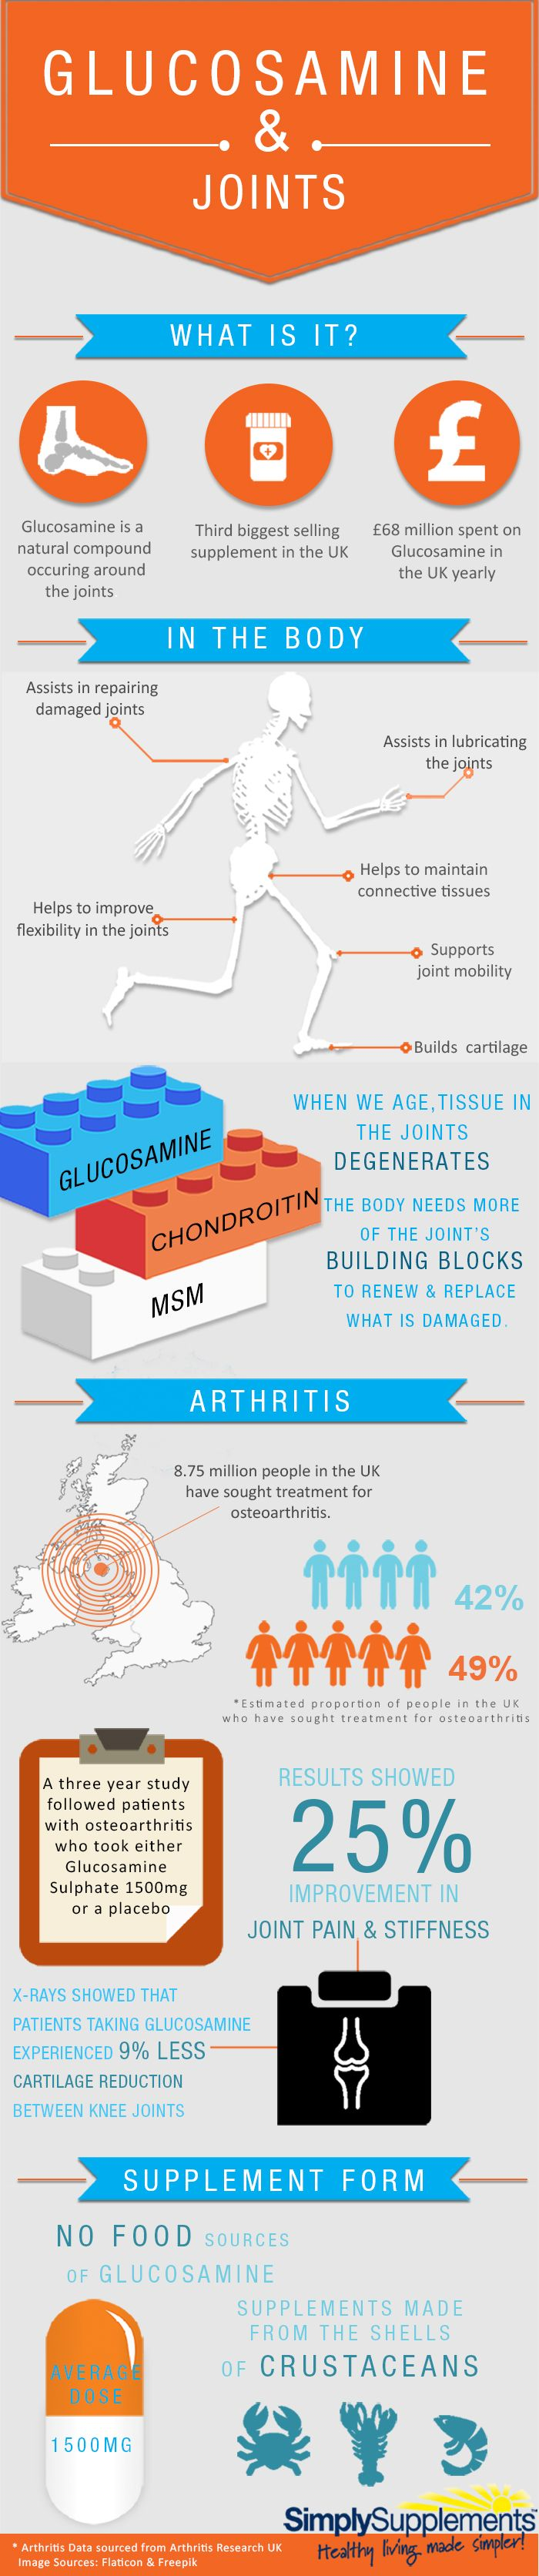 Glucosamine Amp Joints Infographic Health And Fitness